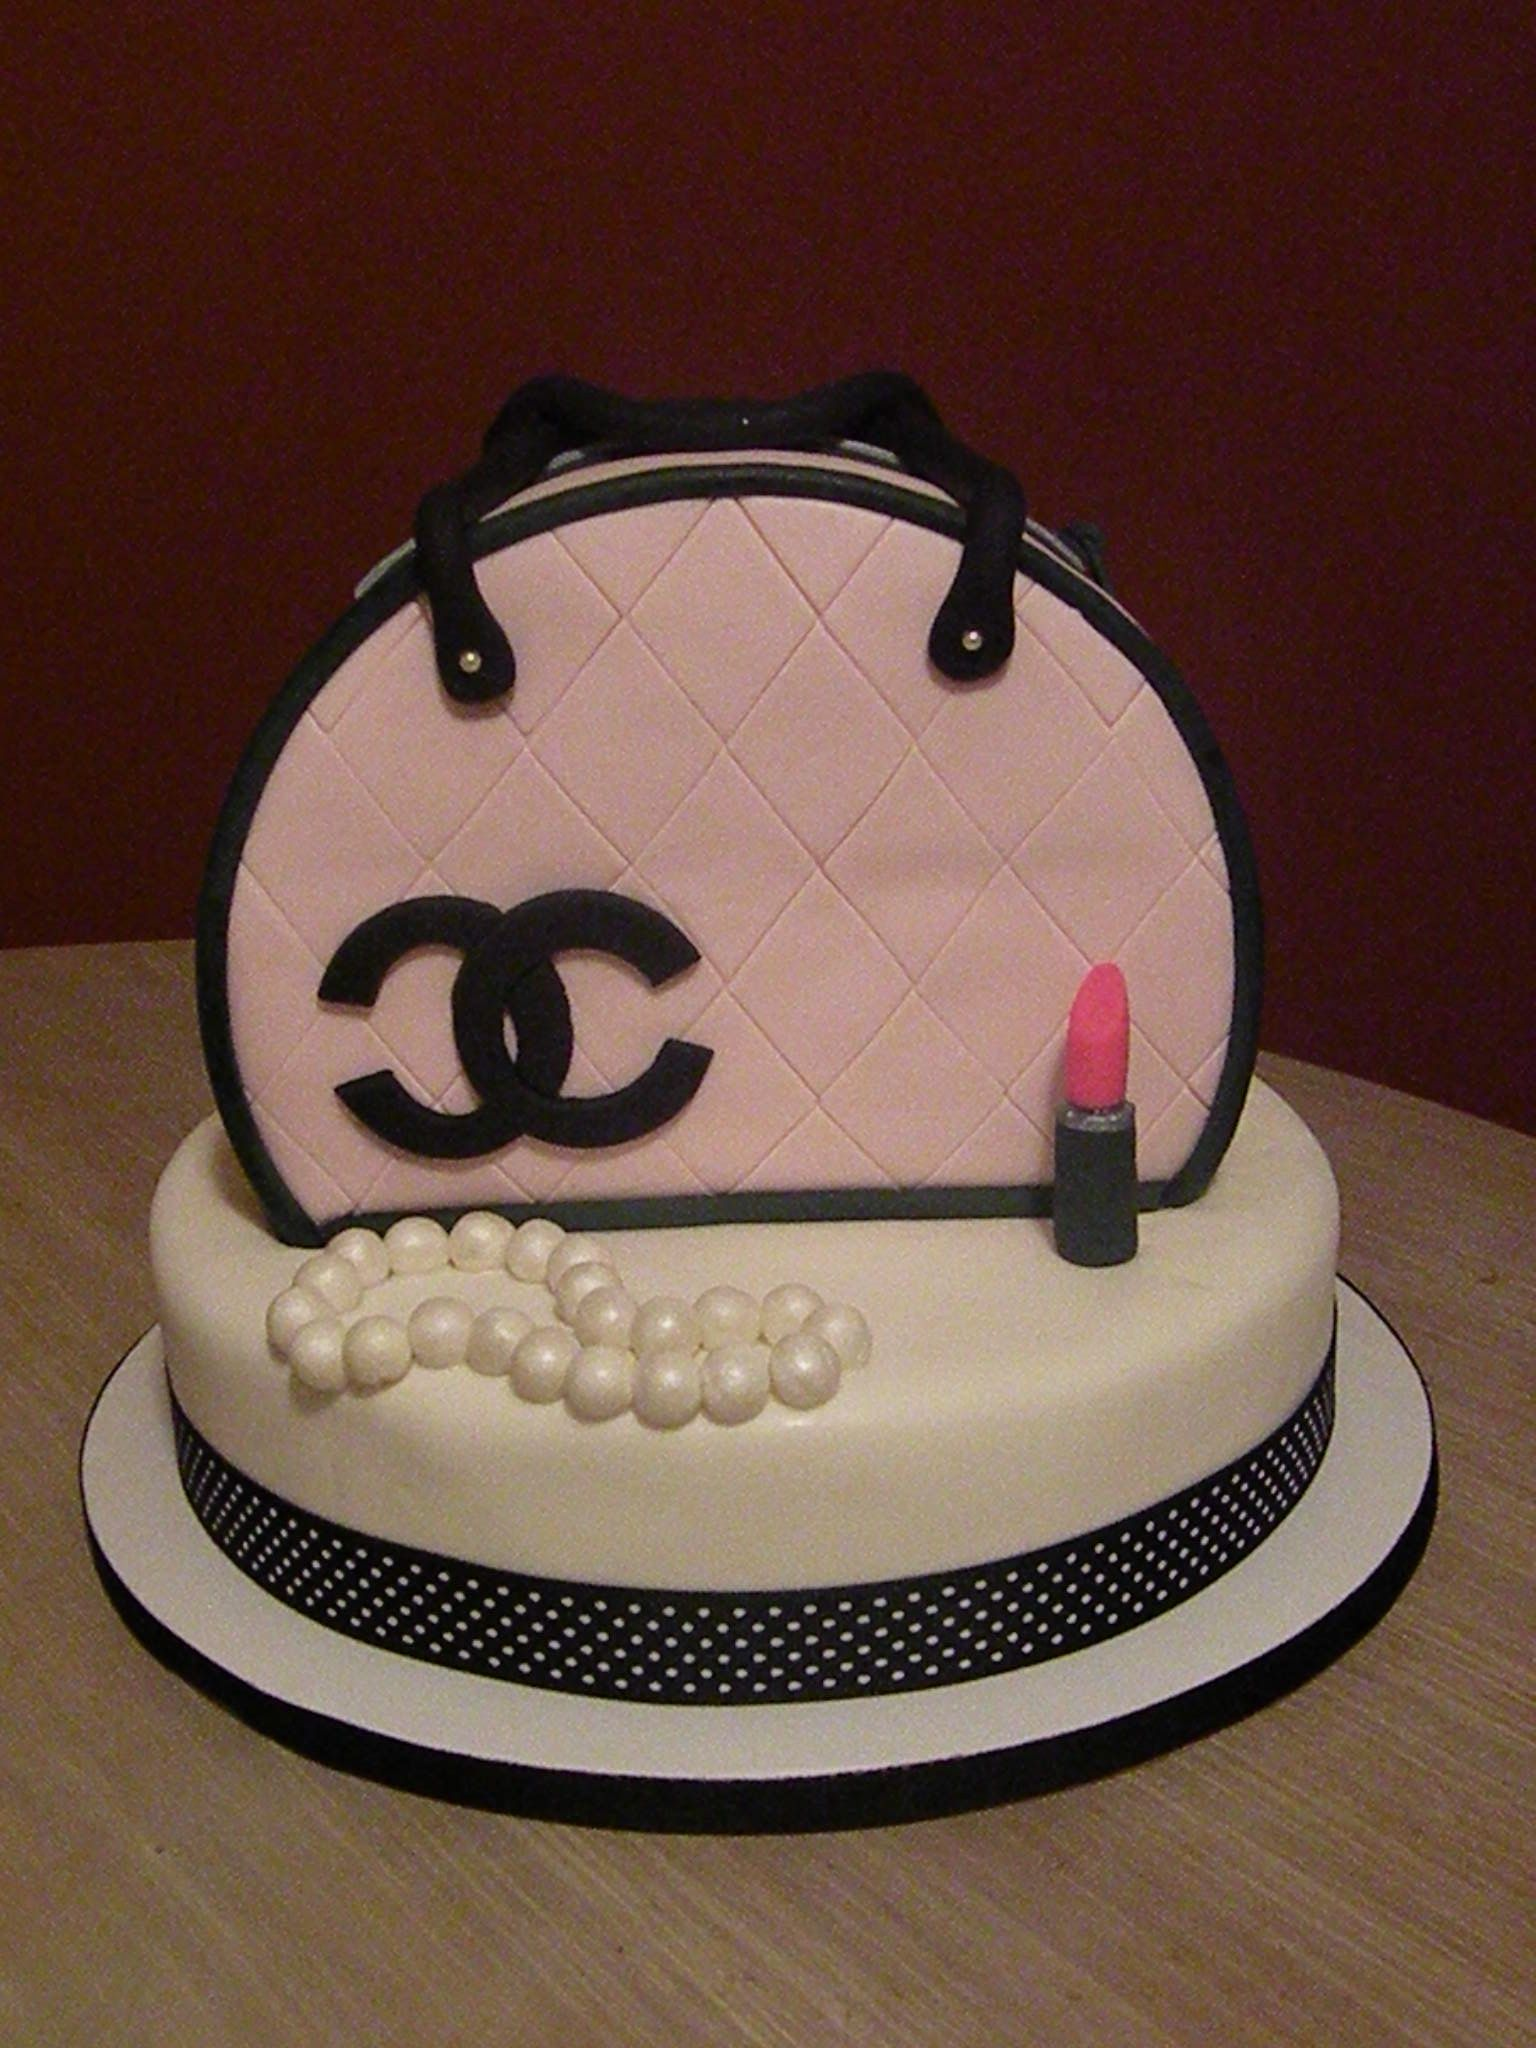 0eb10021ae62 Pink & Black Chanel purse cake - my first purse cake! | Cakes in ...